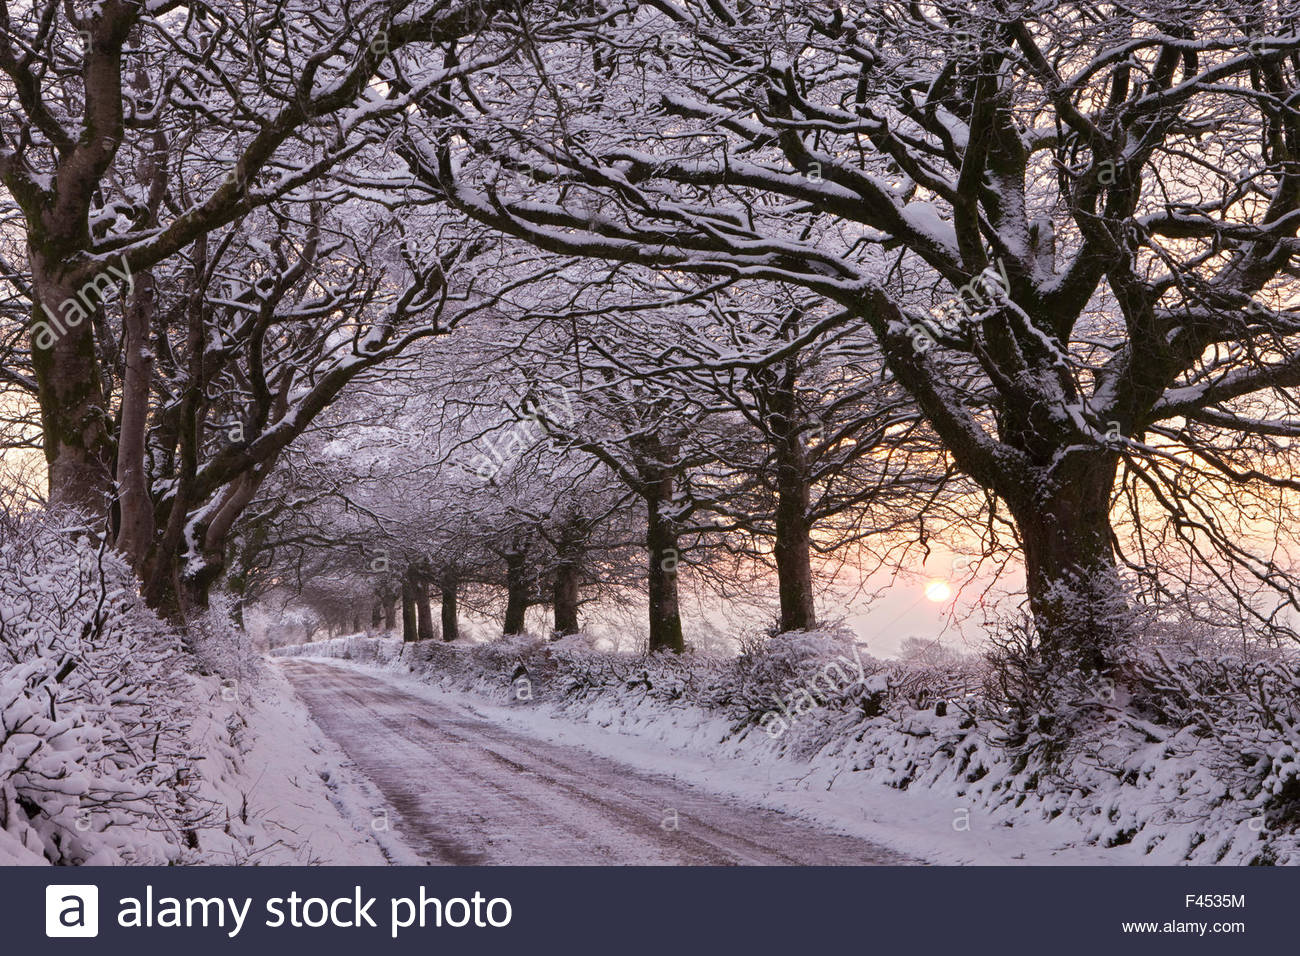 Tree lined country lane laden with snow, Exmoor National Park, Somerset, England. January 2012. - Stock Image